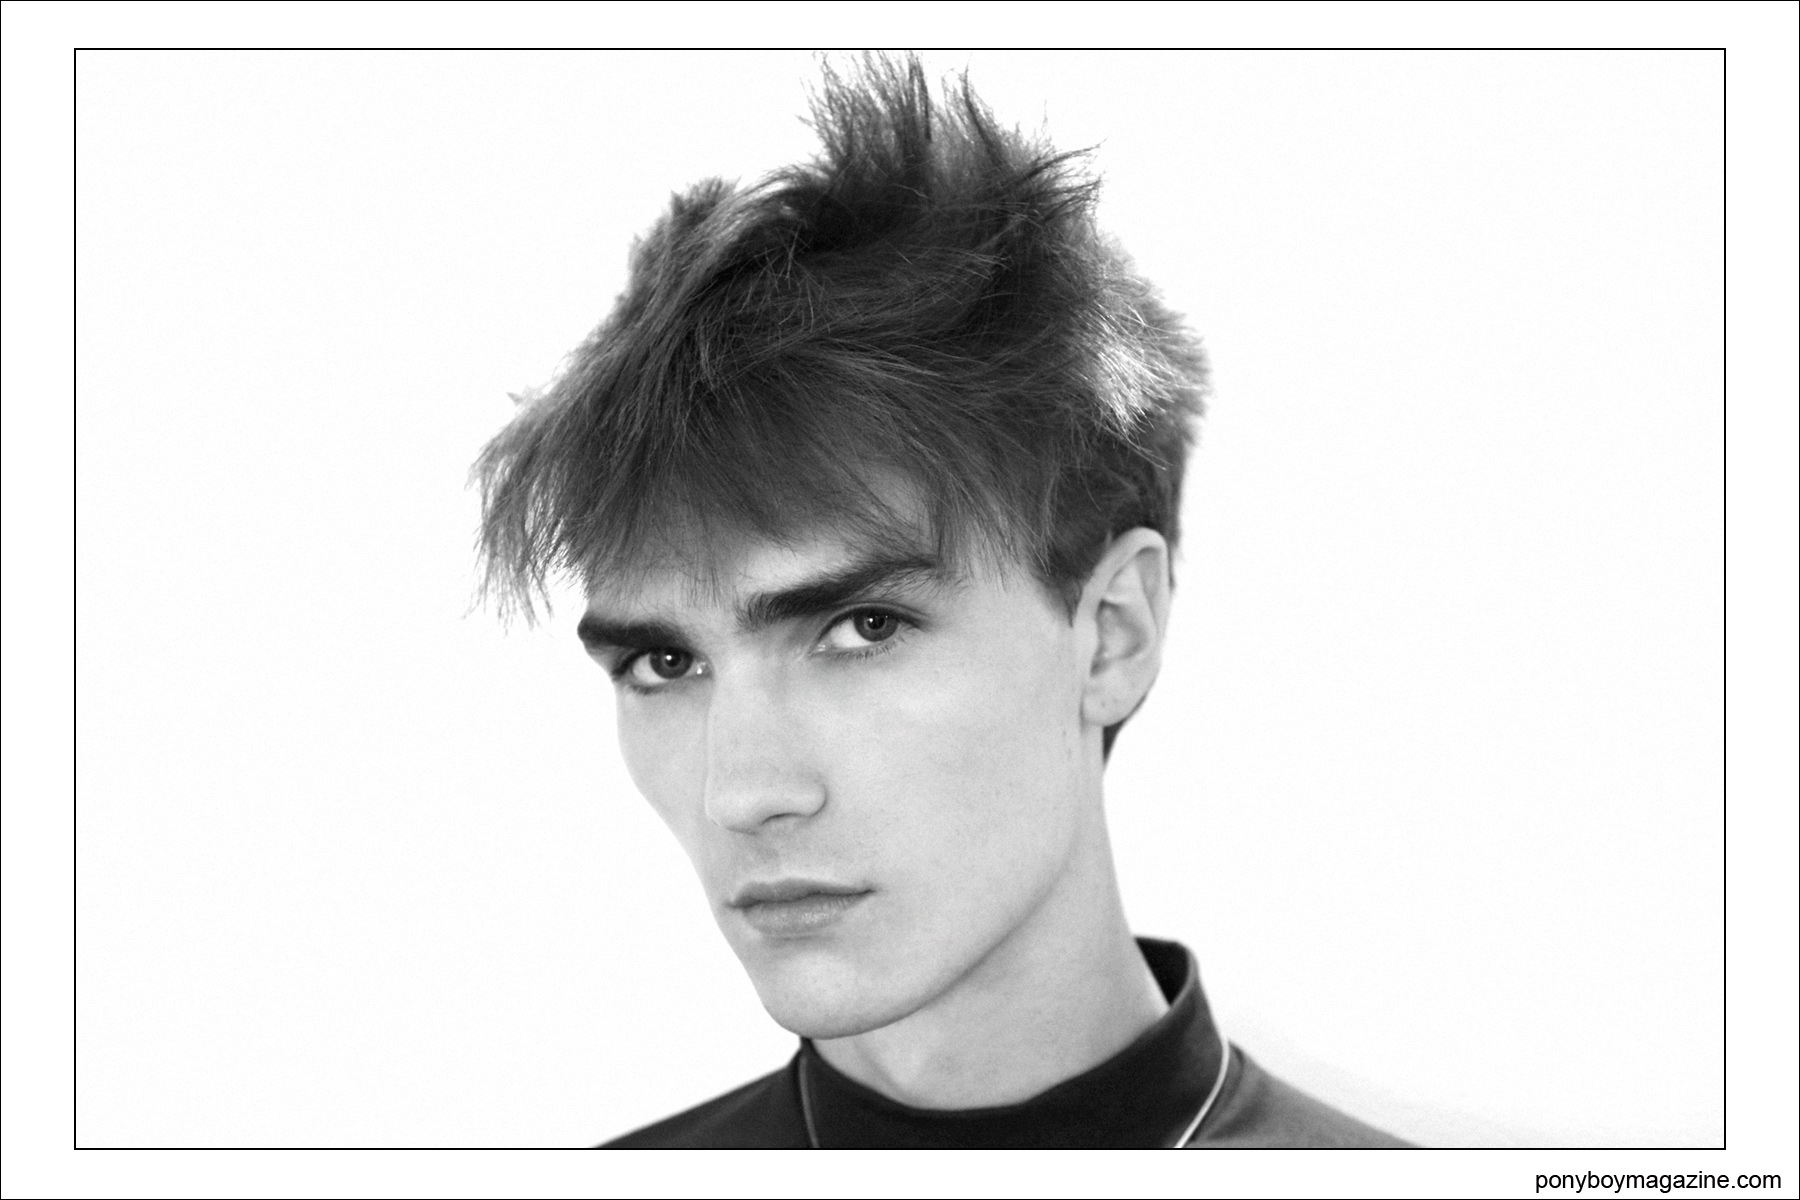 Portrait of a male model with new wave hair, backstage at Patrik Ervell Spring/Summer 2015 by Alexander Thompson for Ponyboy Magazine.